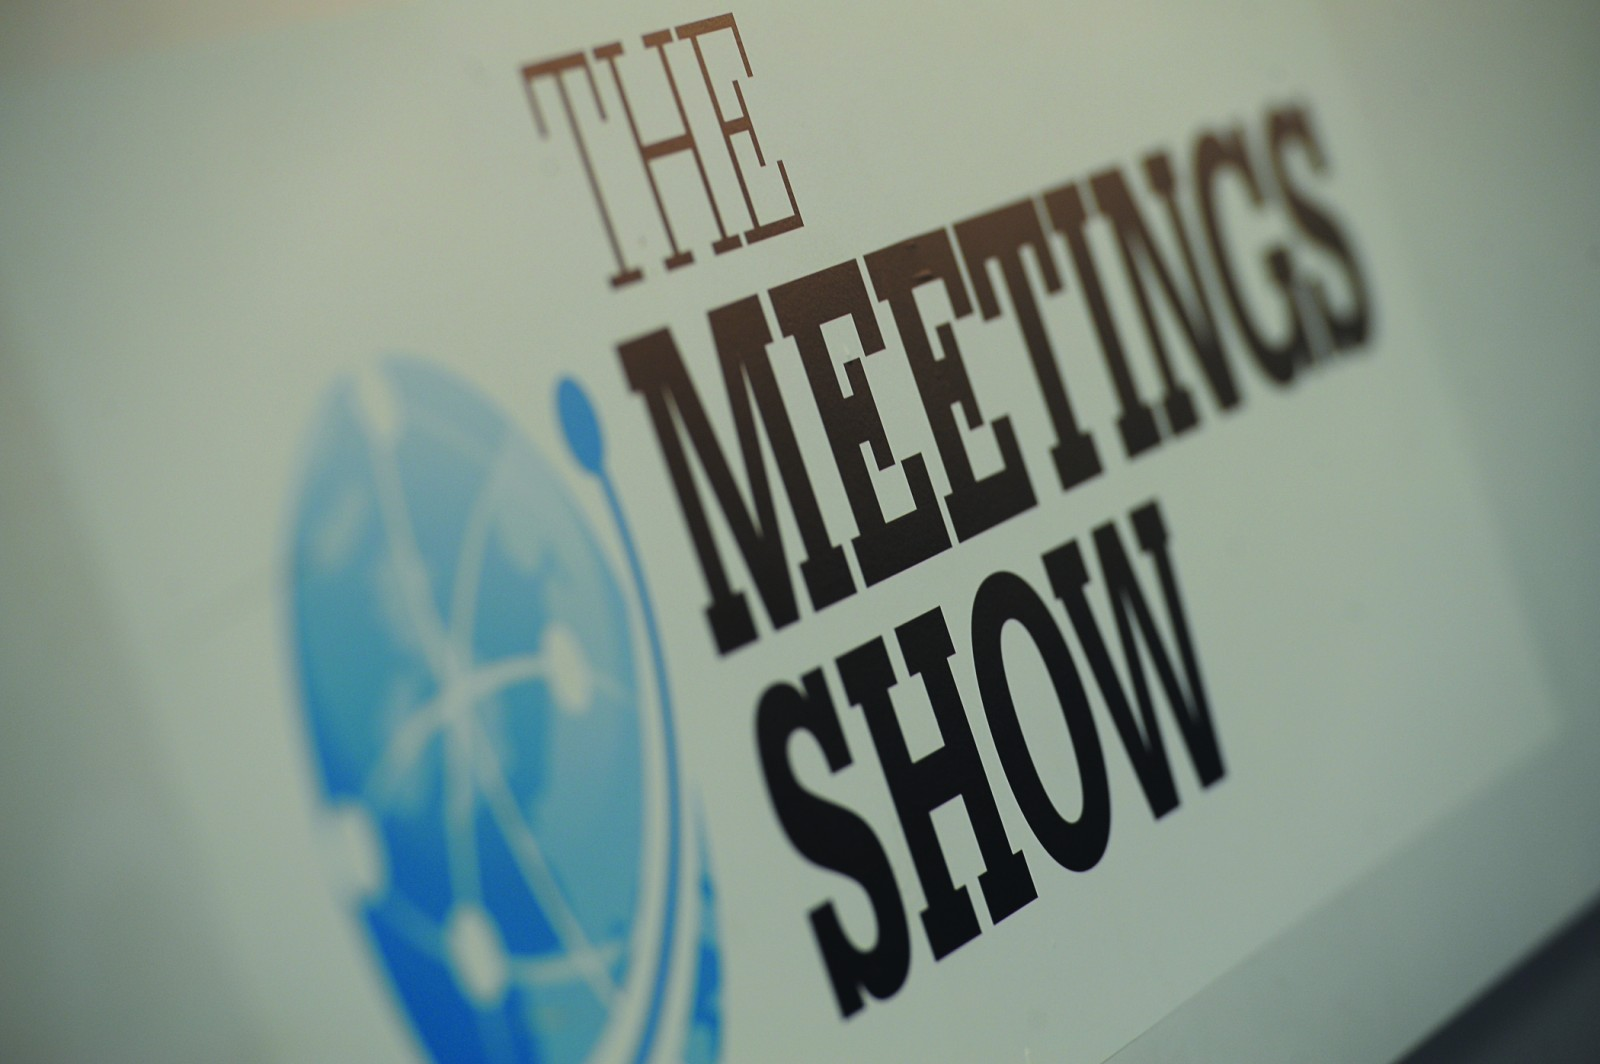 the-meetings-show